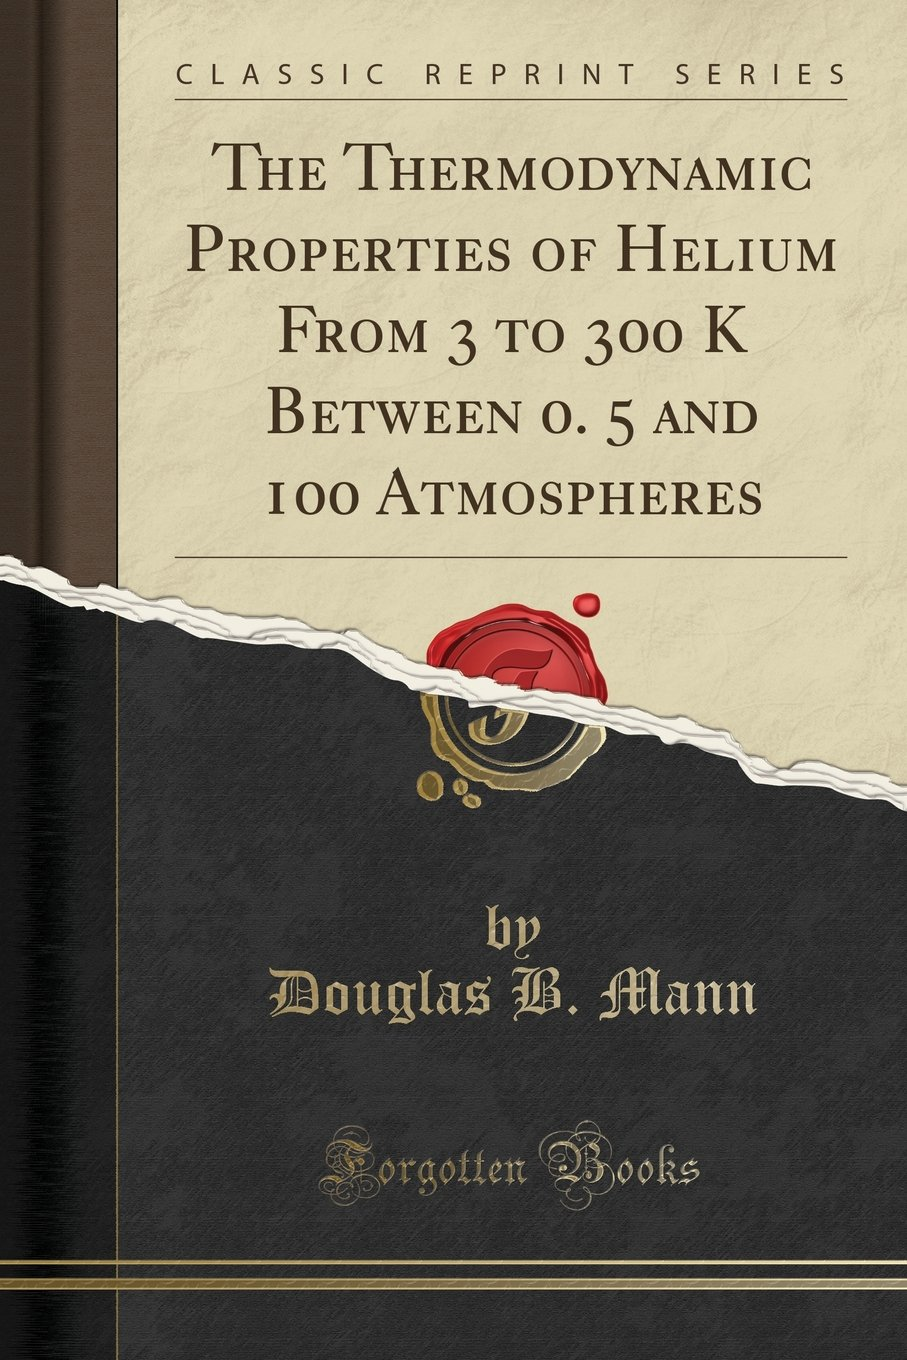 Download The Thermodynamic Properties of Helium From 3 to 300 K Between 0. 5 and 100 Atmospheres (Classic Reprint) pdf